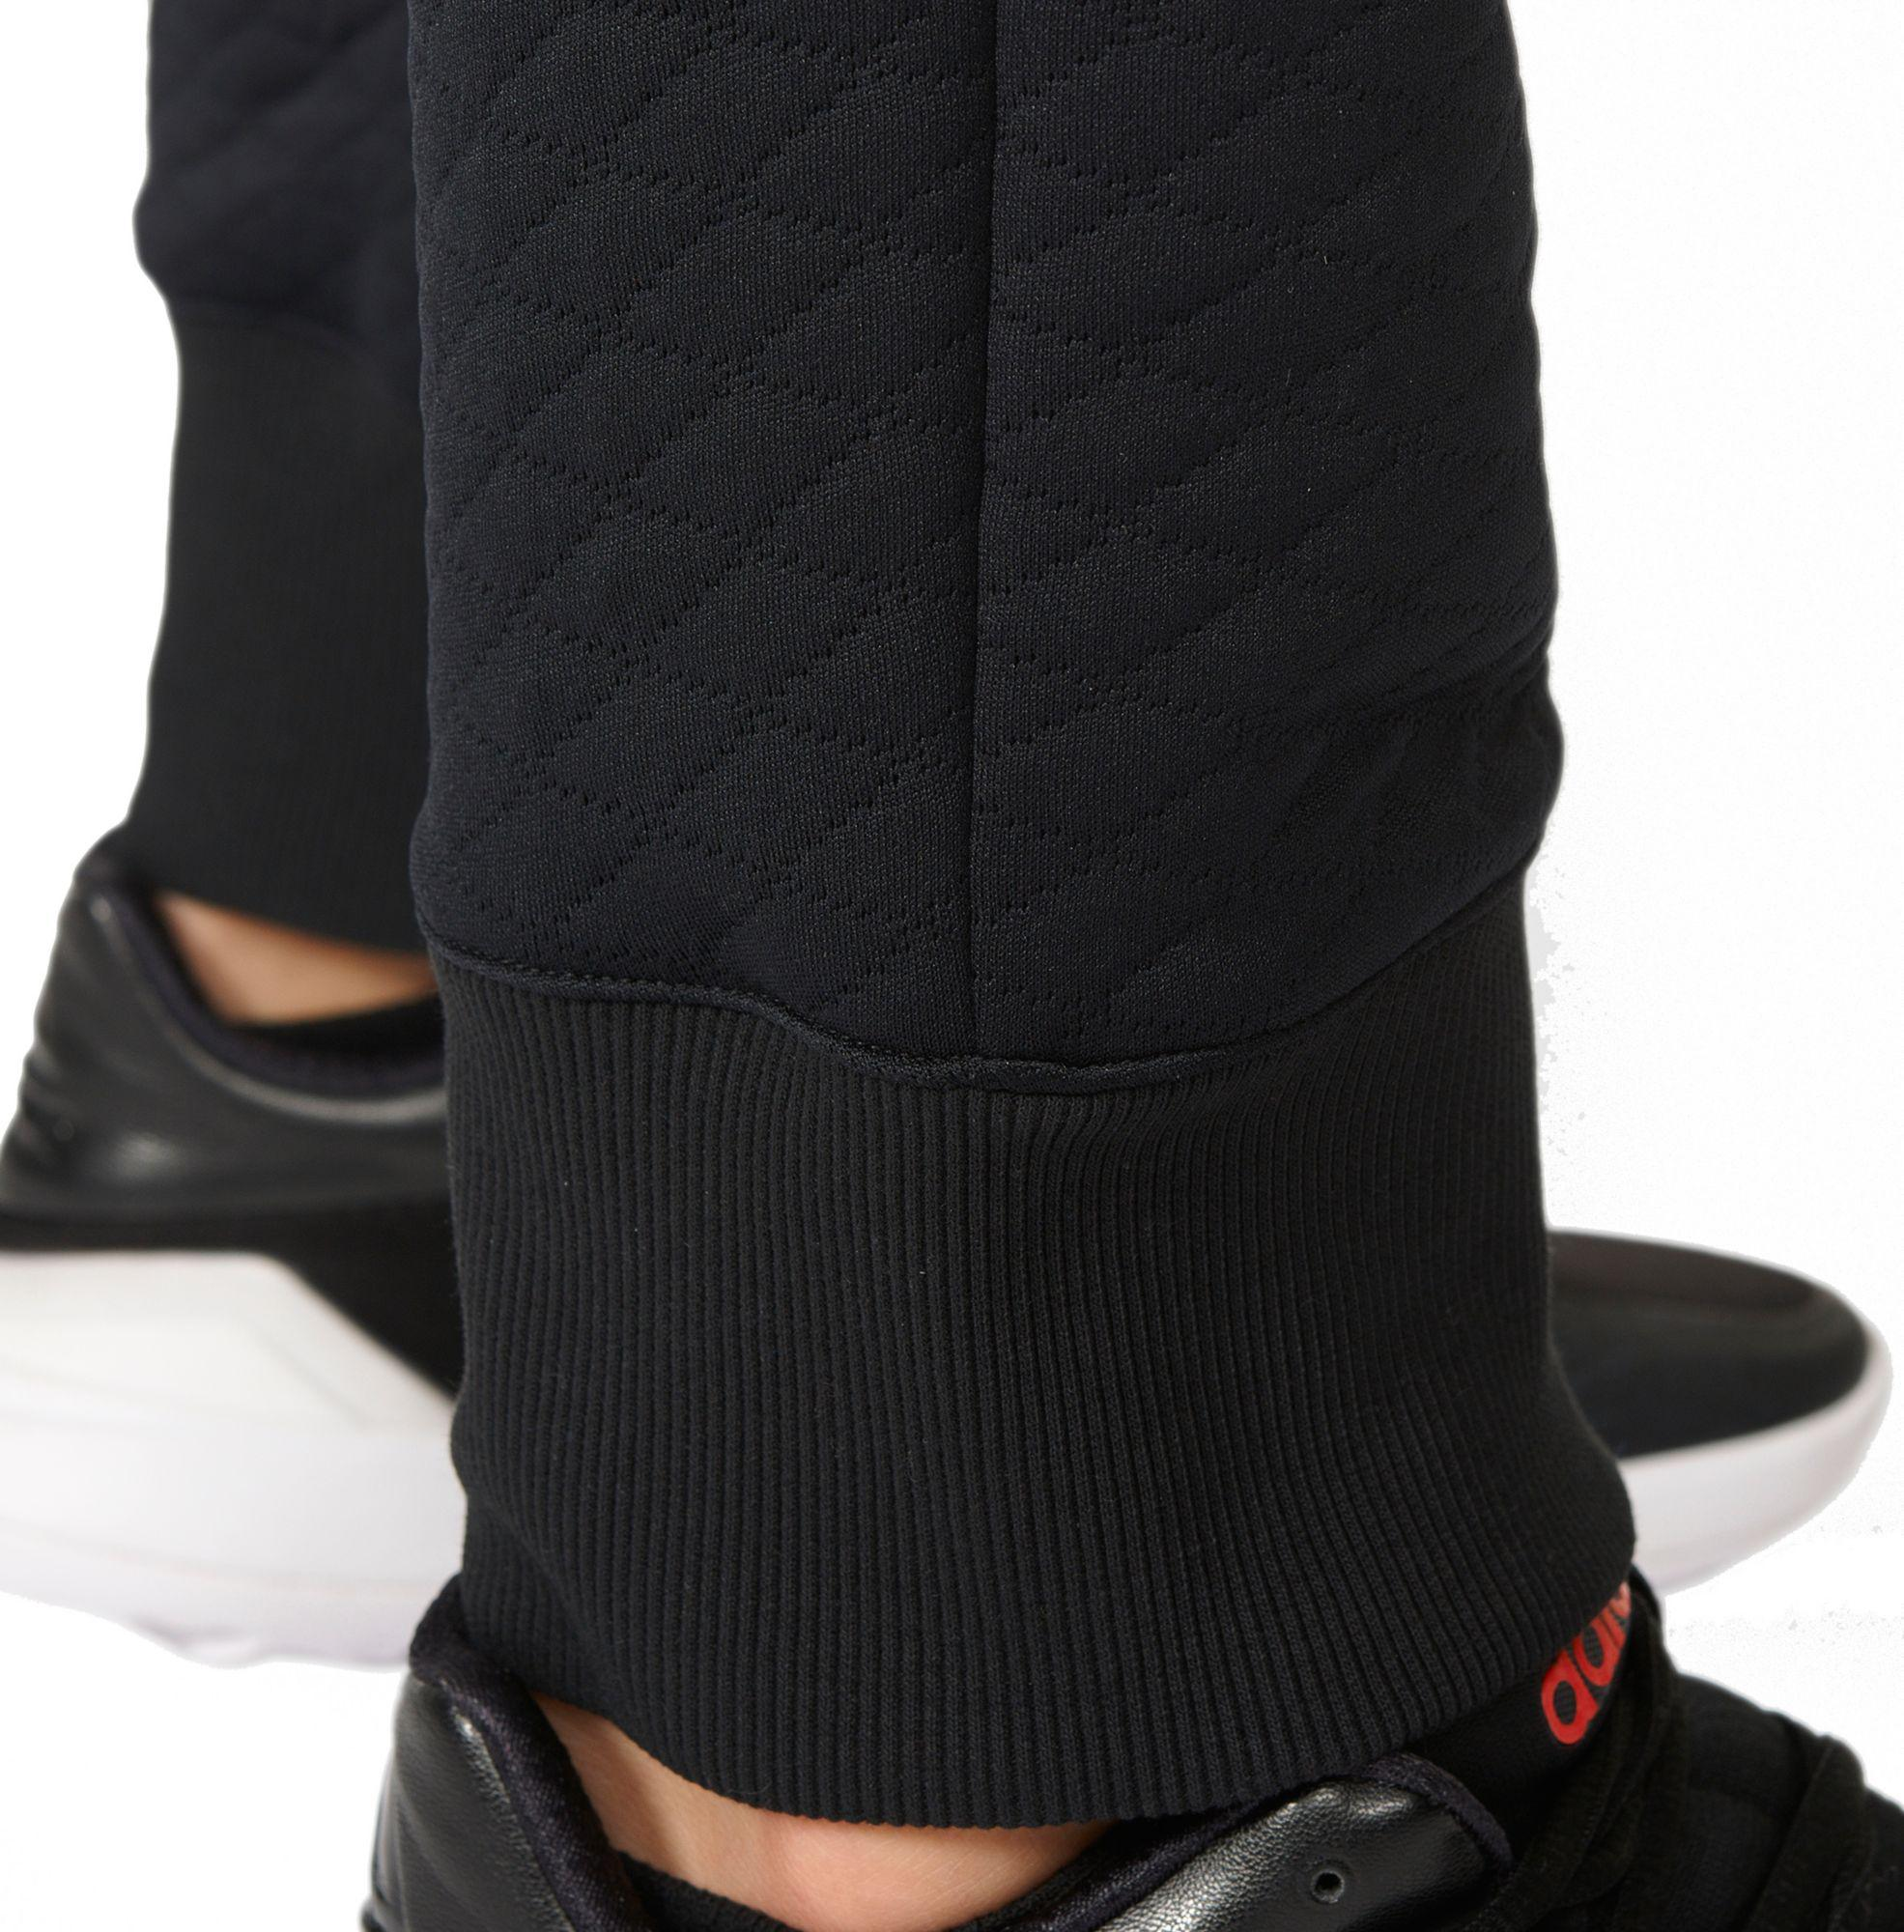 adidas pants quilted